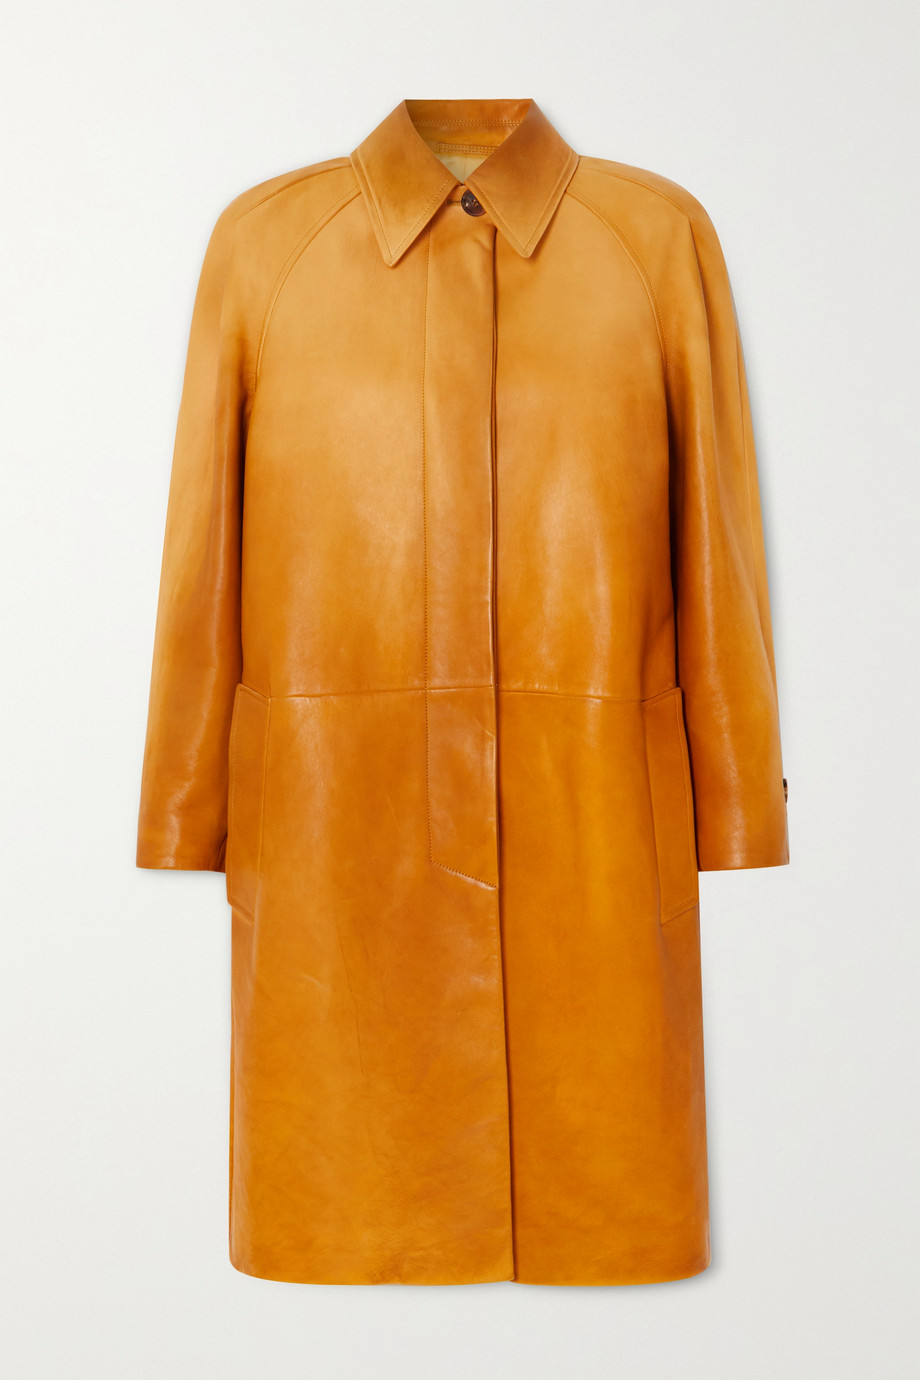 Miu Miu Leather coat